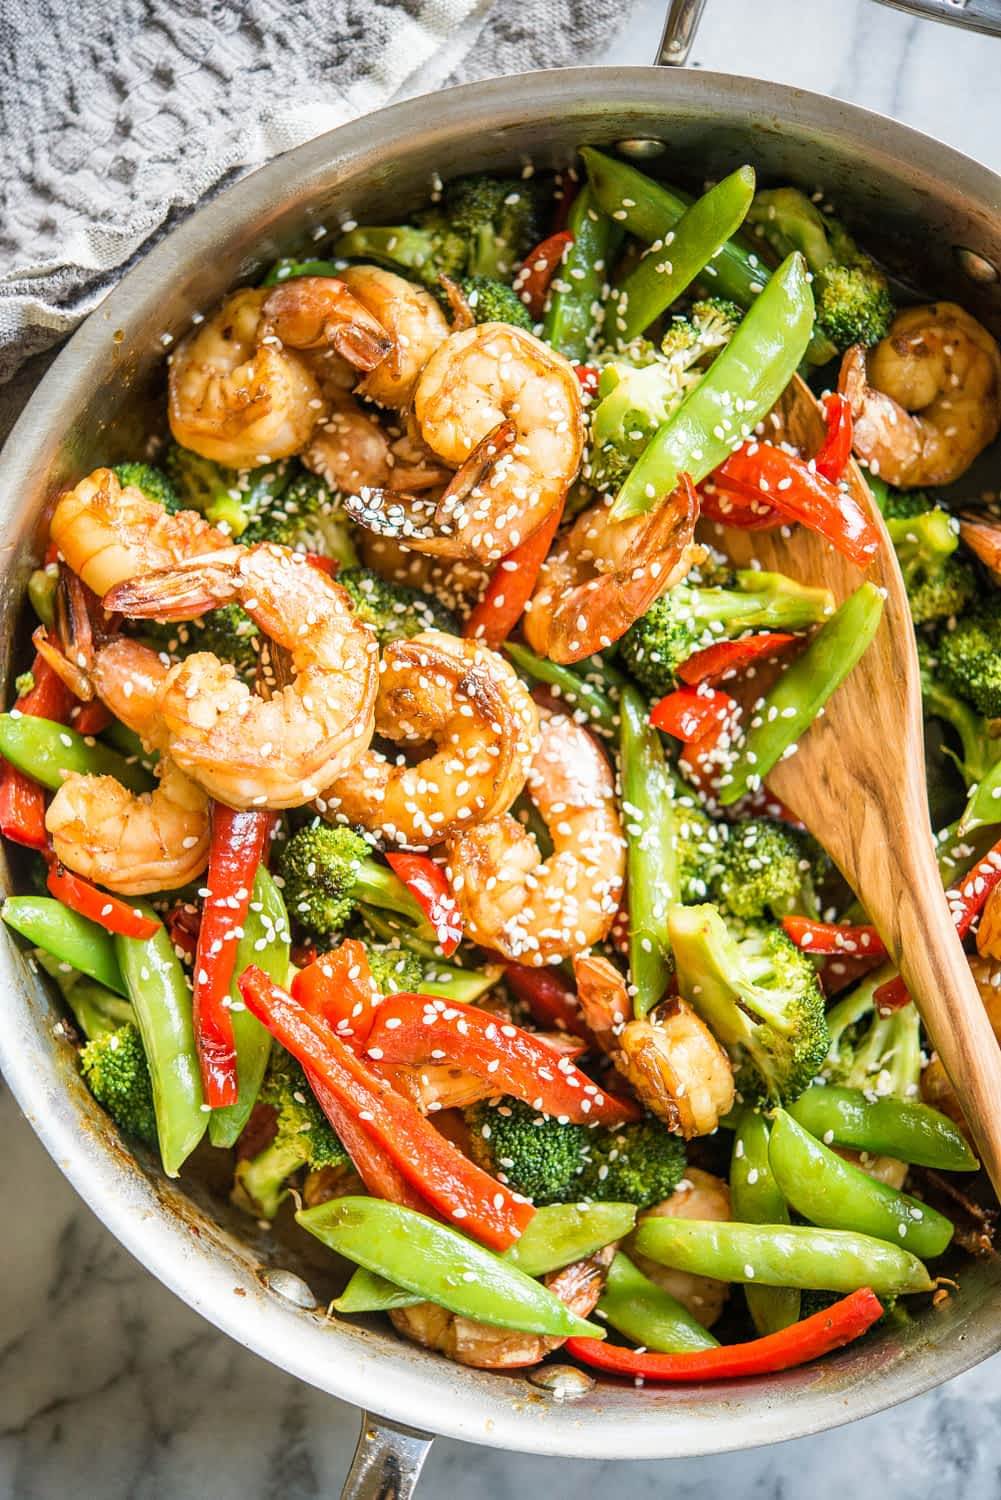 teriyaki shrimp, bell peppers, broccoli, and snow peas in a stainless steel skillet on a marble board